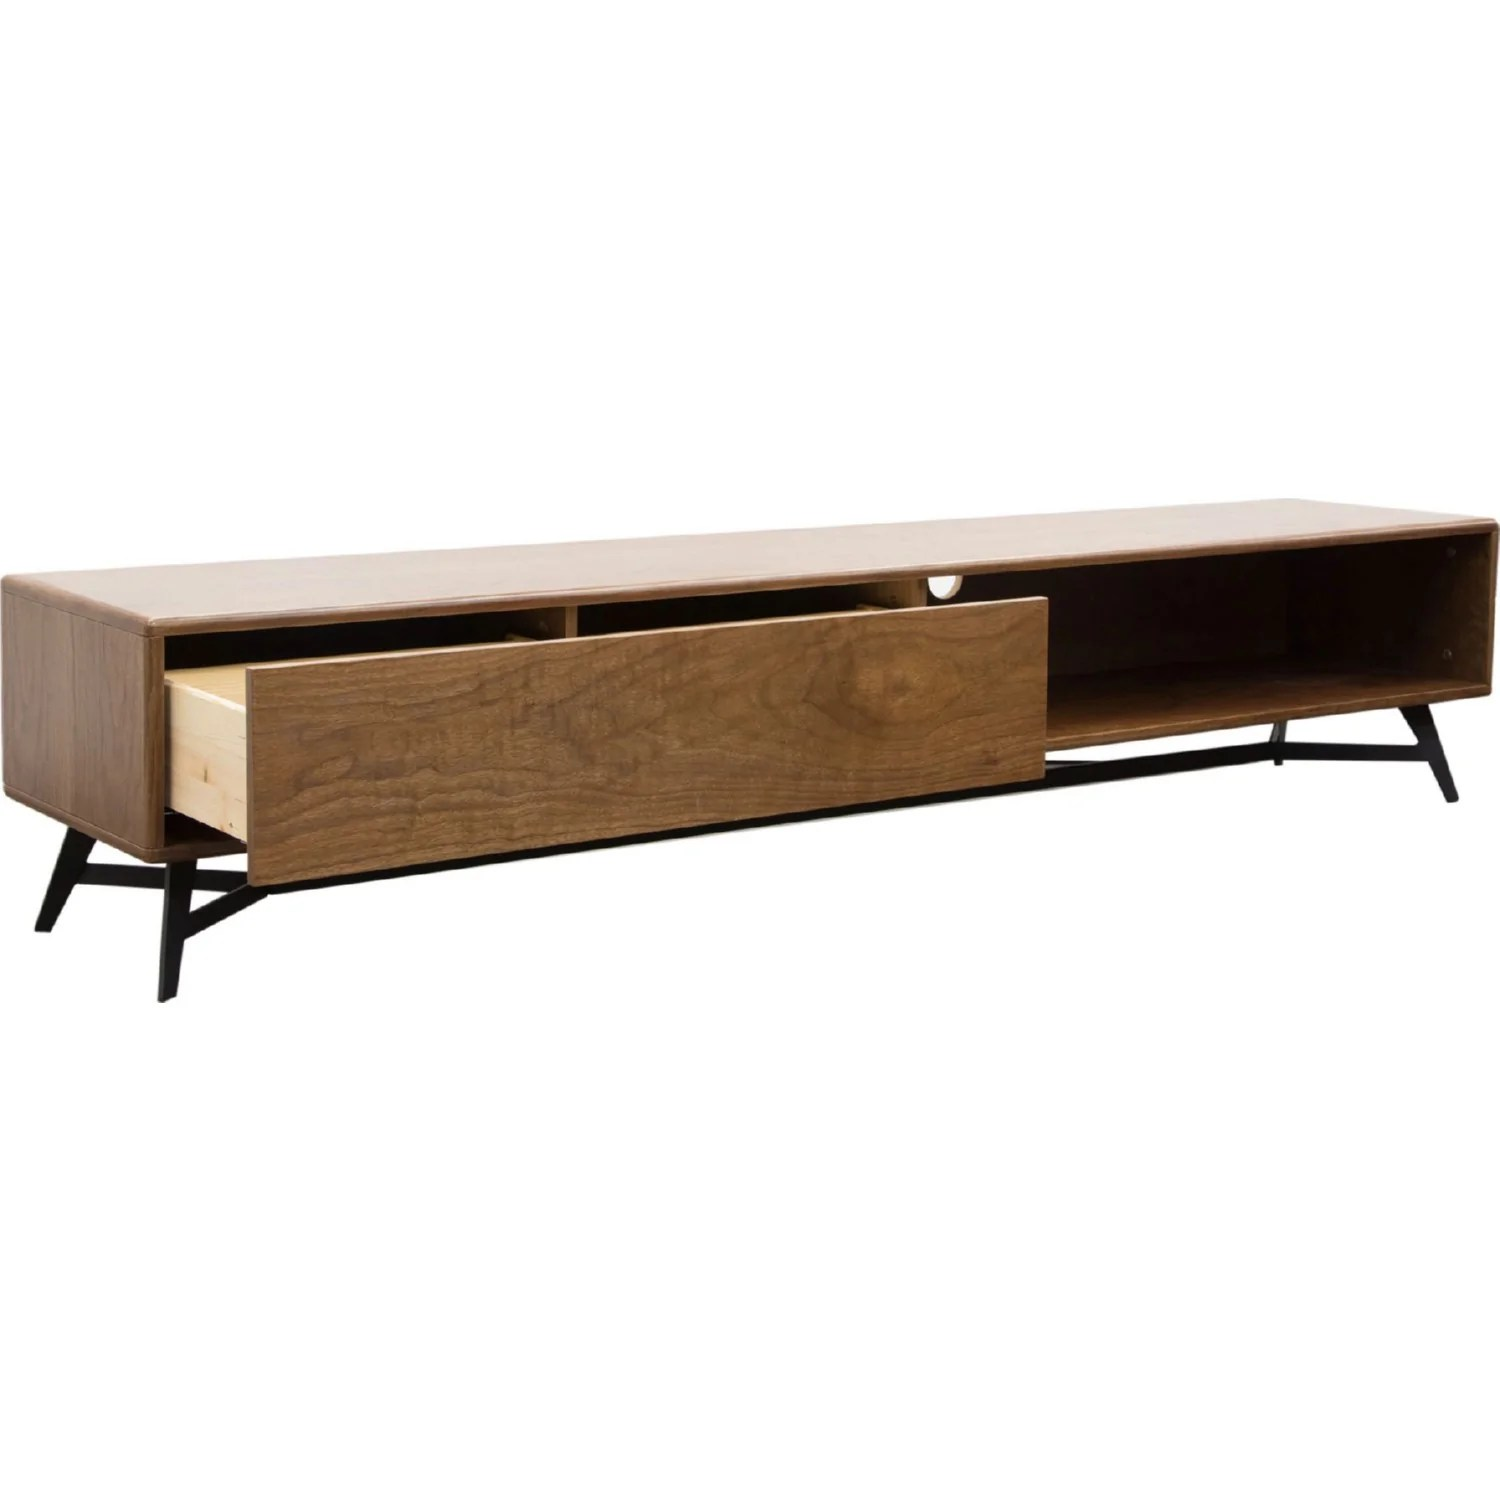 State Flat Screens Low Profile Tv Stand Low Profile Tv Stand Interior Gallerie Low Profile Tv Stand Fireplace Low Profile Tv Stands houzz 01 Low Profile Tv Stand